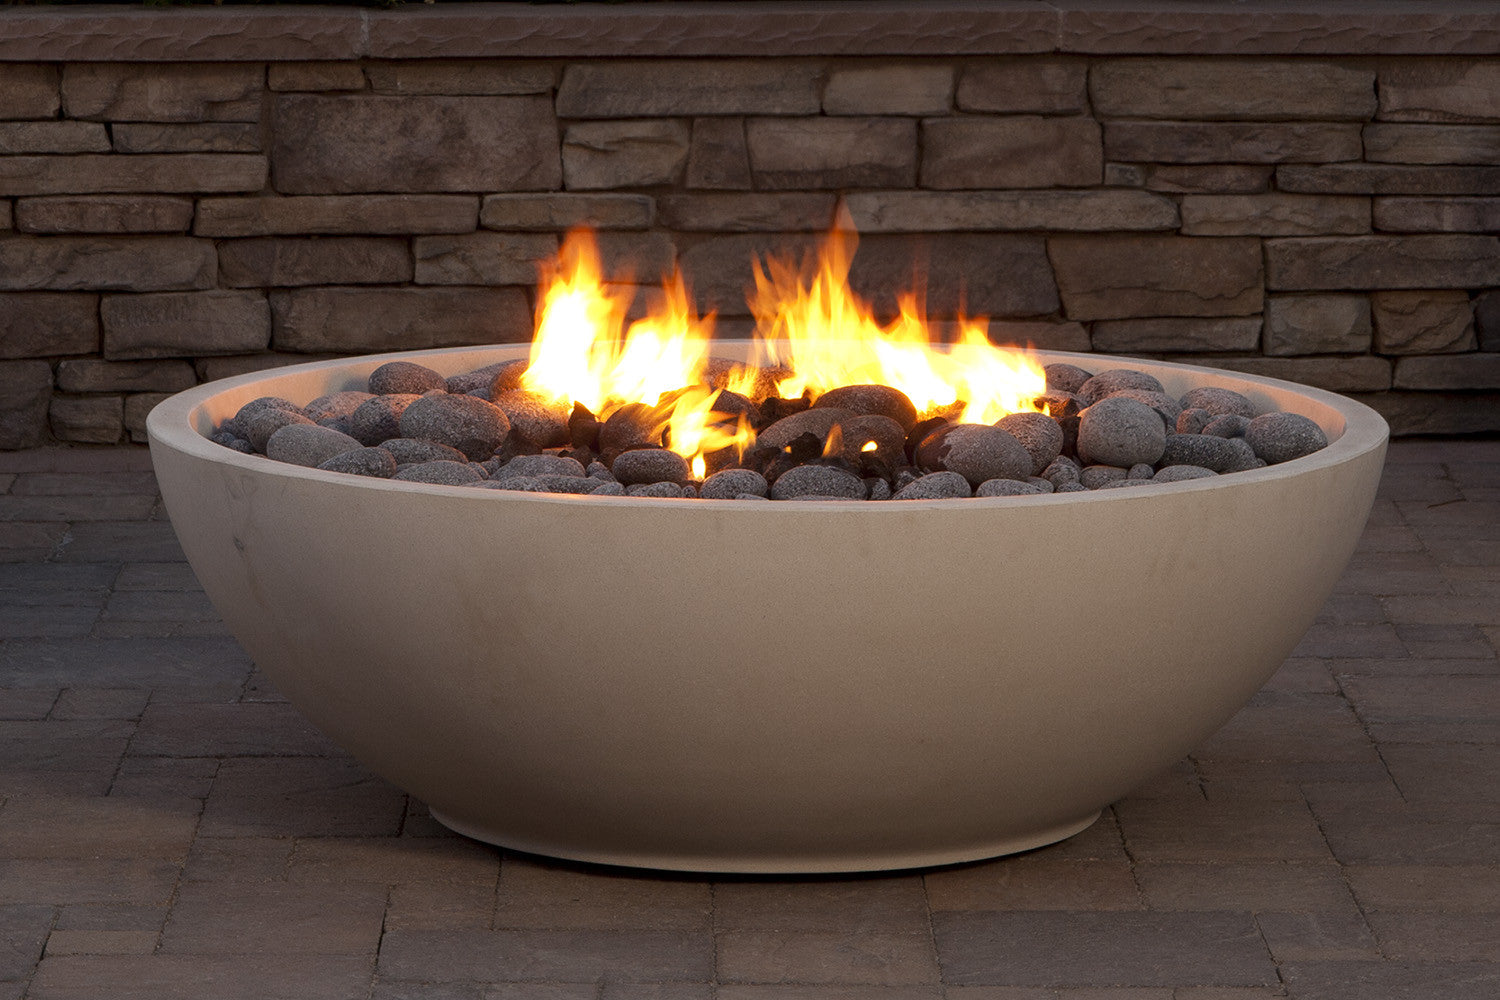 Mezzaluna fire bowl eldorado stone for Eldorado stone fire bowl